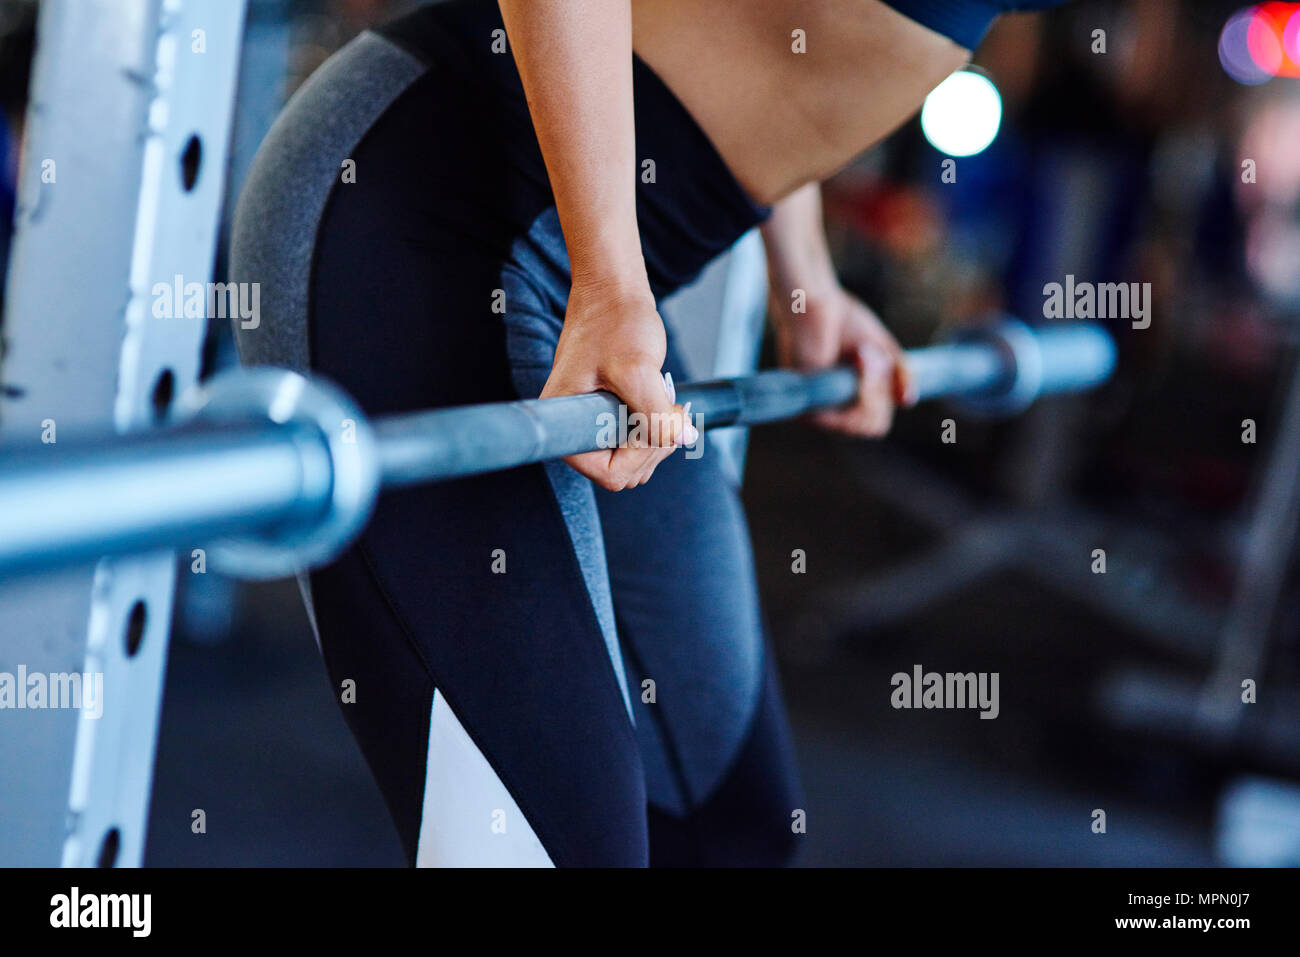 Woman lifting barbell in gym - Stock Image